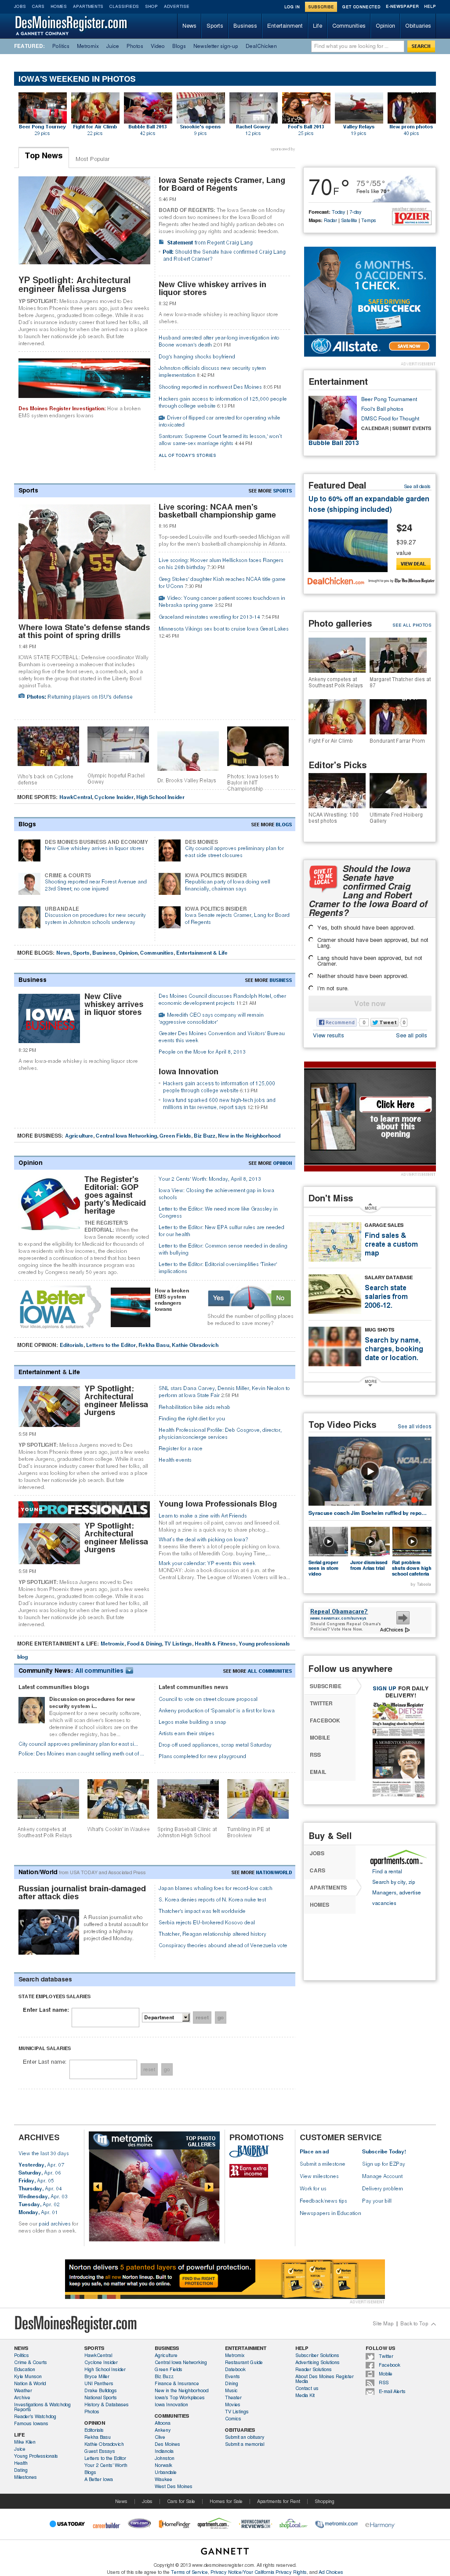 DesMoinesRegister.com at Tuesday April 9, 2013, 2:04 a.m. UTC